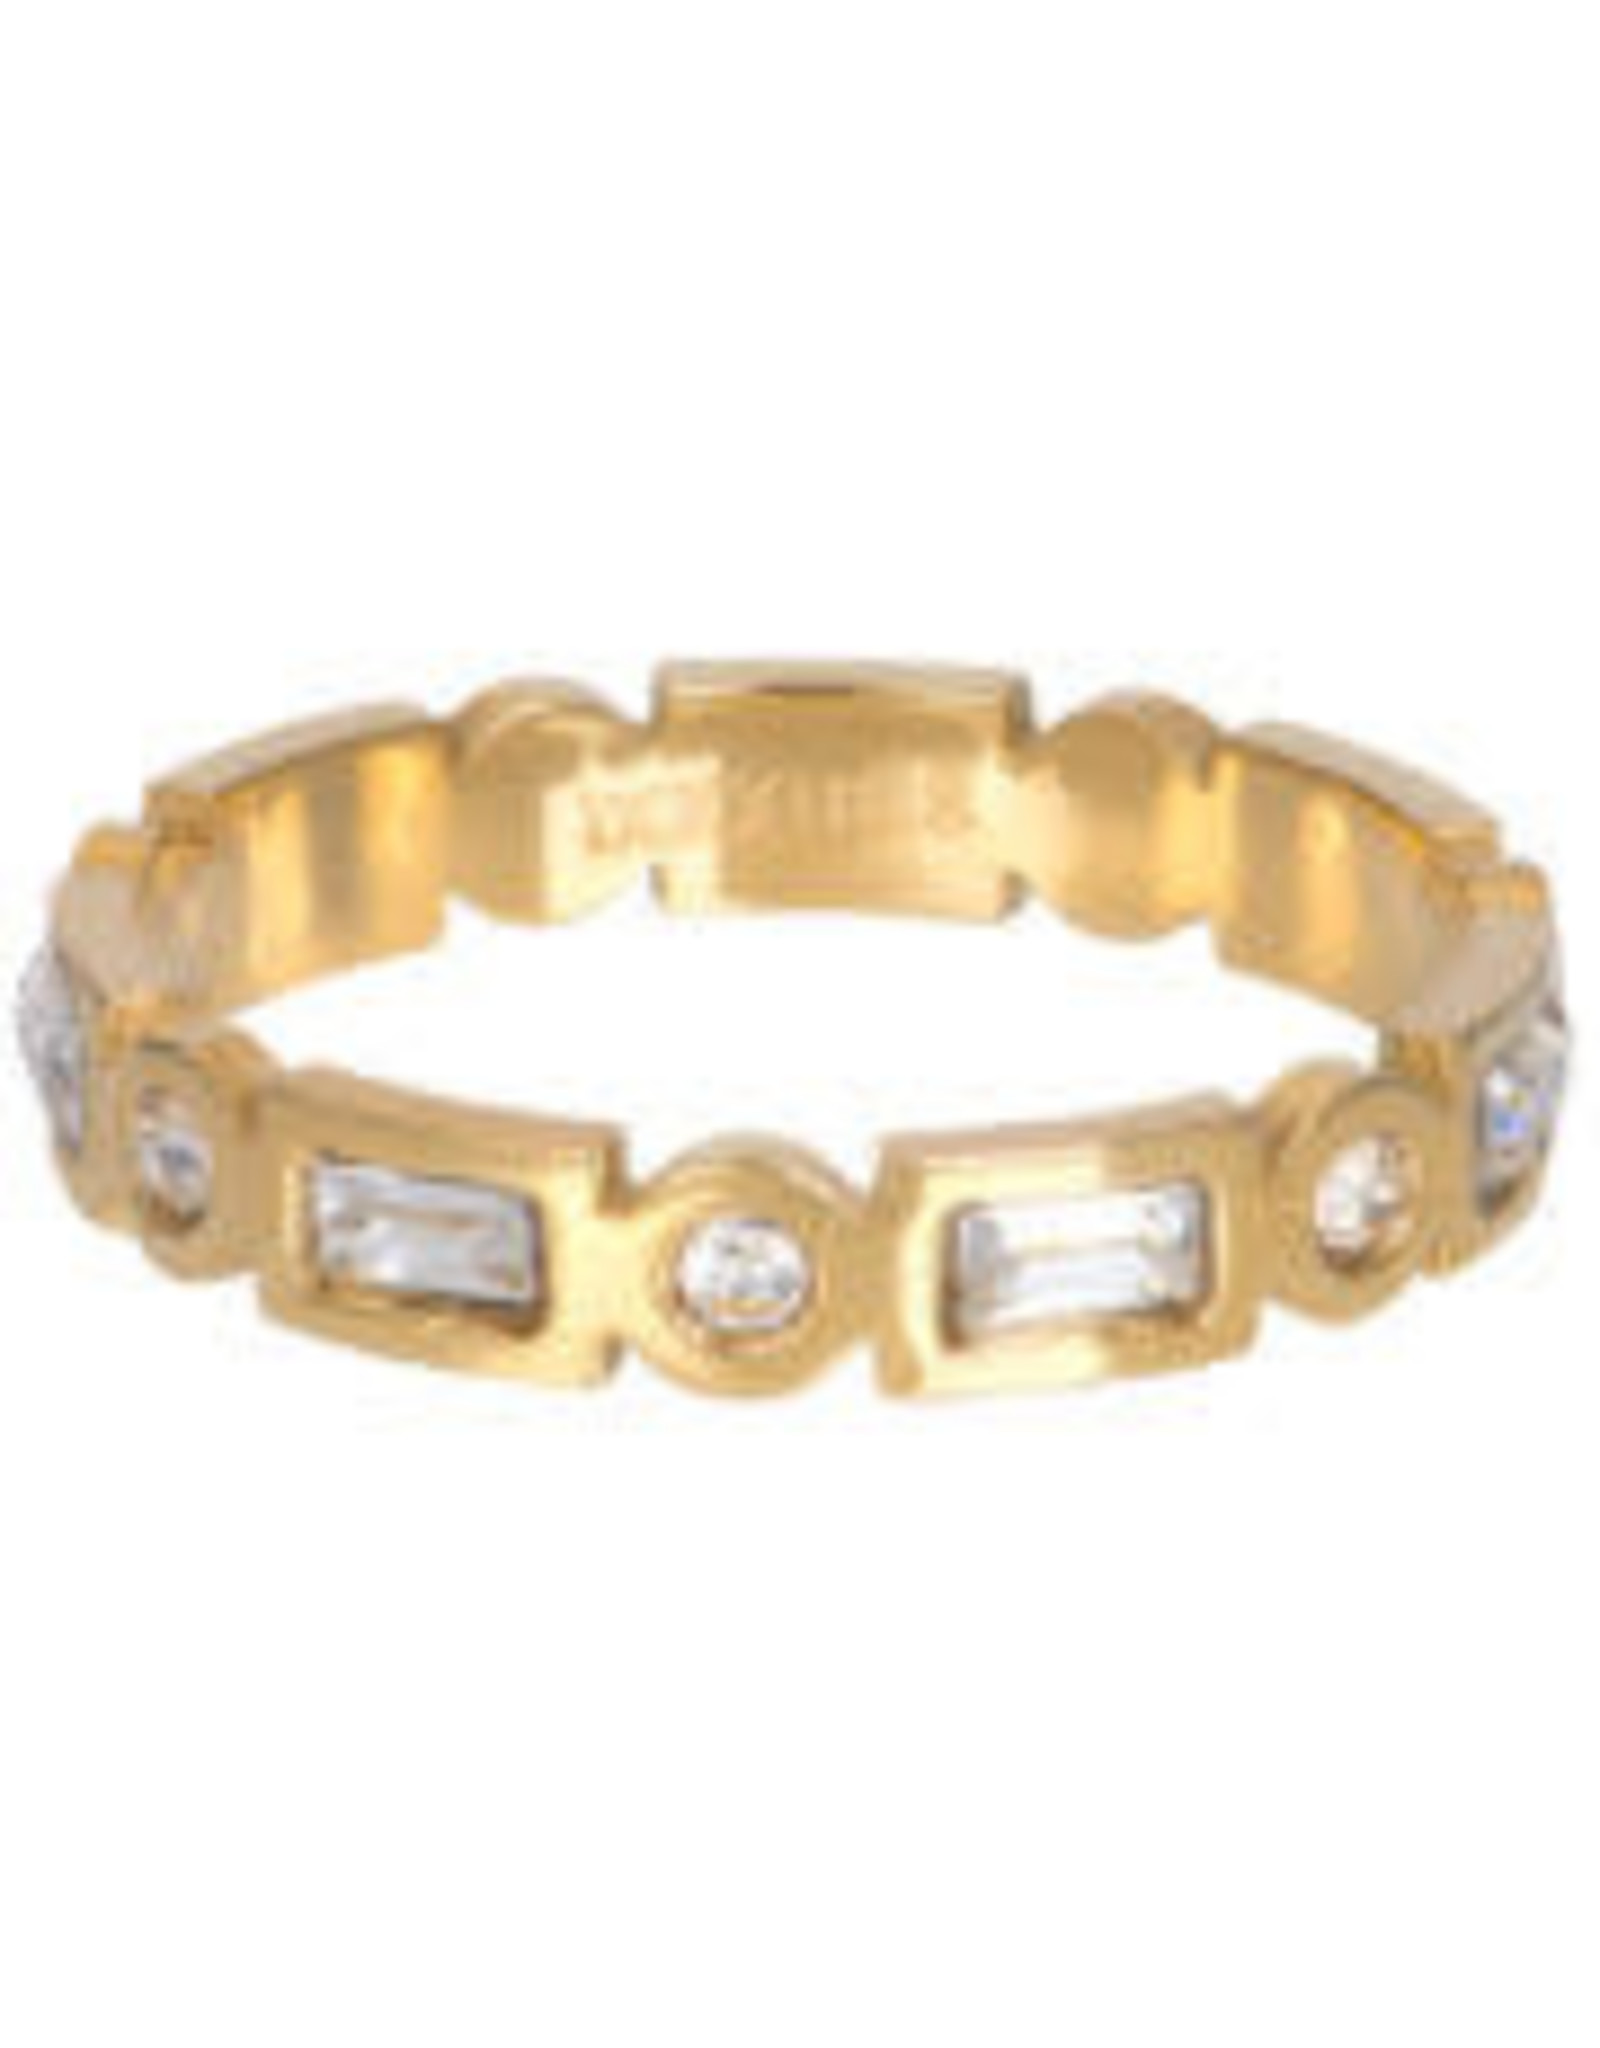 IXXXI IXXXI Excellent ring Gold